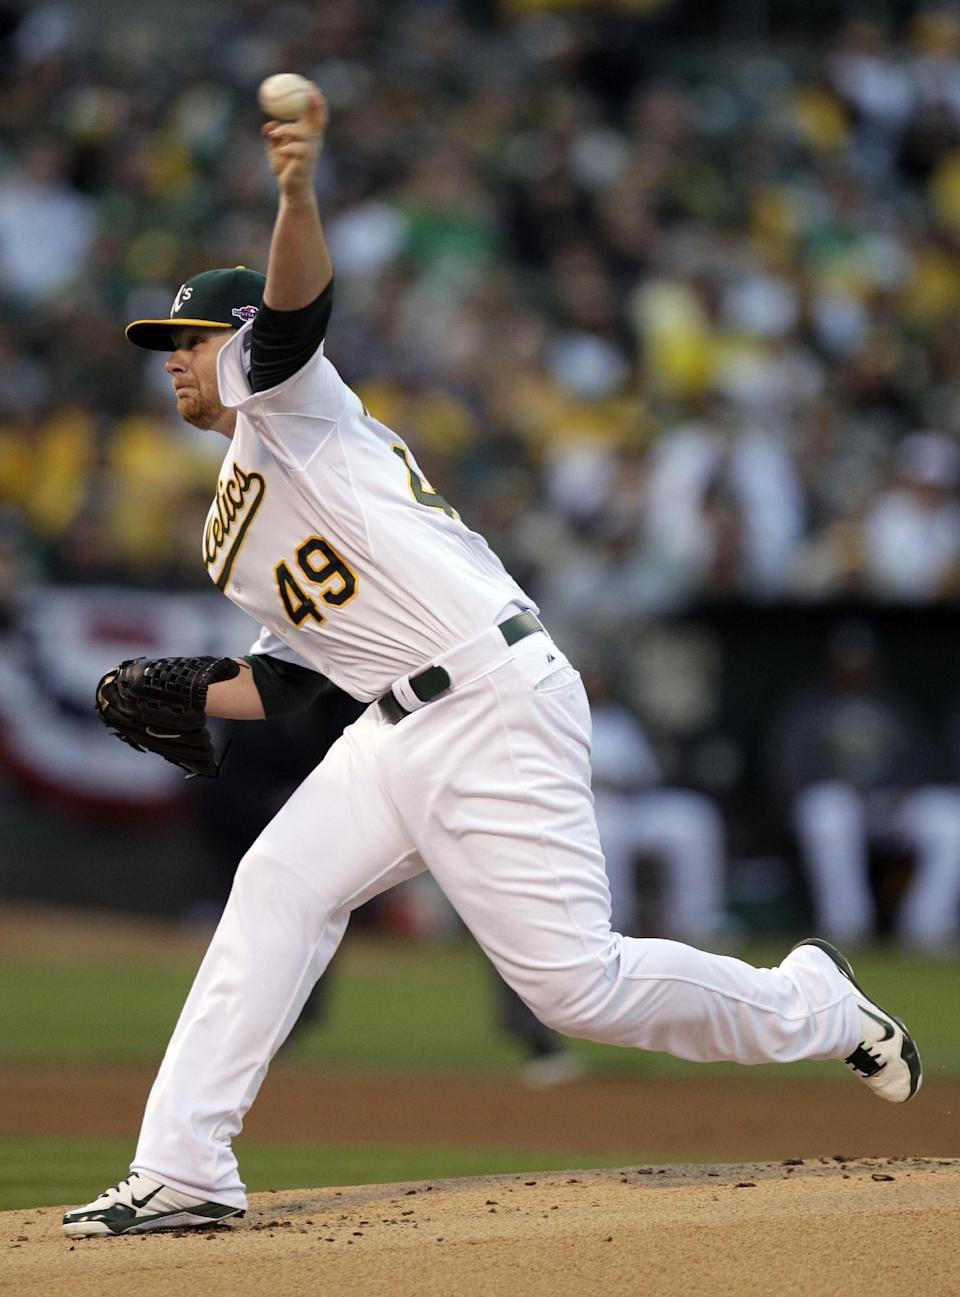 Oakland Athletics starting pitcher Brett Anderson throws during the first inning of Game 3 of the Athletics' American League division baseball series against the Detroit Tigers in Oakland, Calif., Tuesday, Oct. 9, 2012. (AP Photo/Ben Margot)